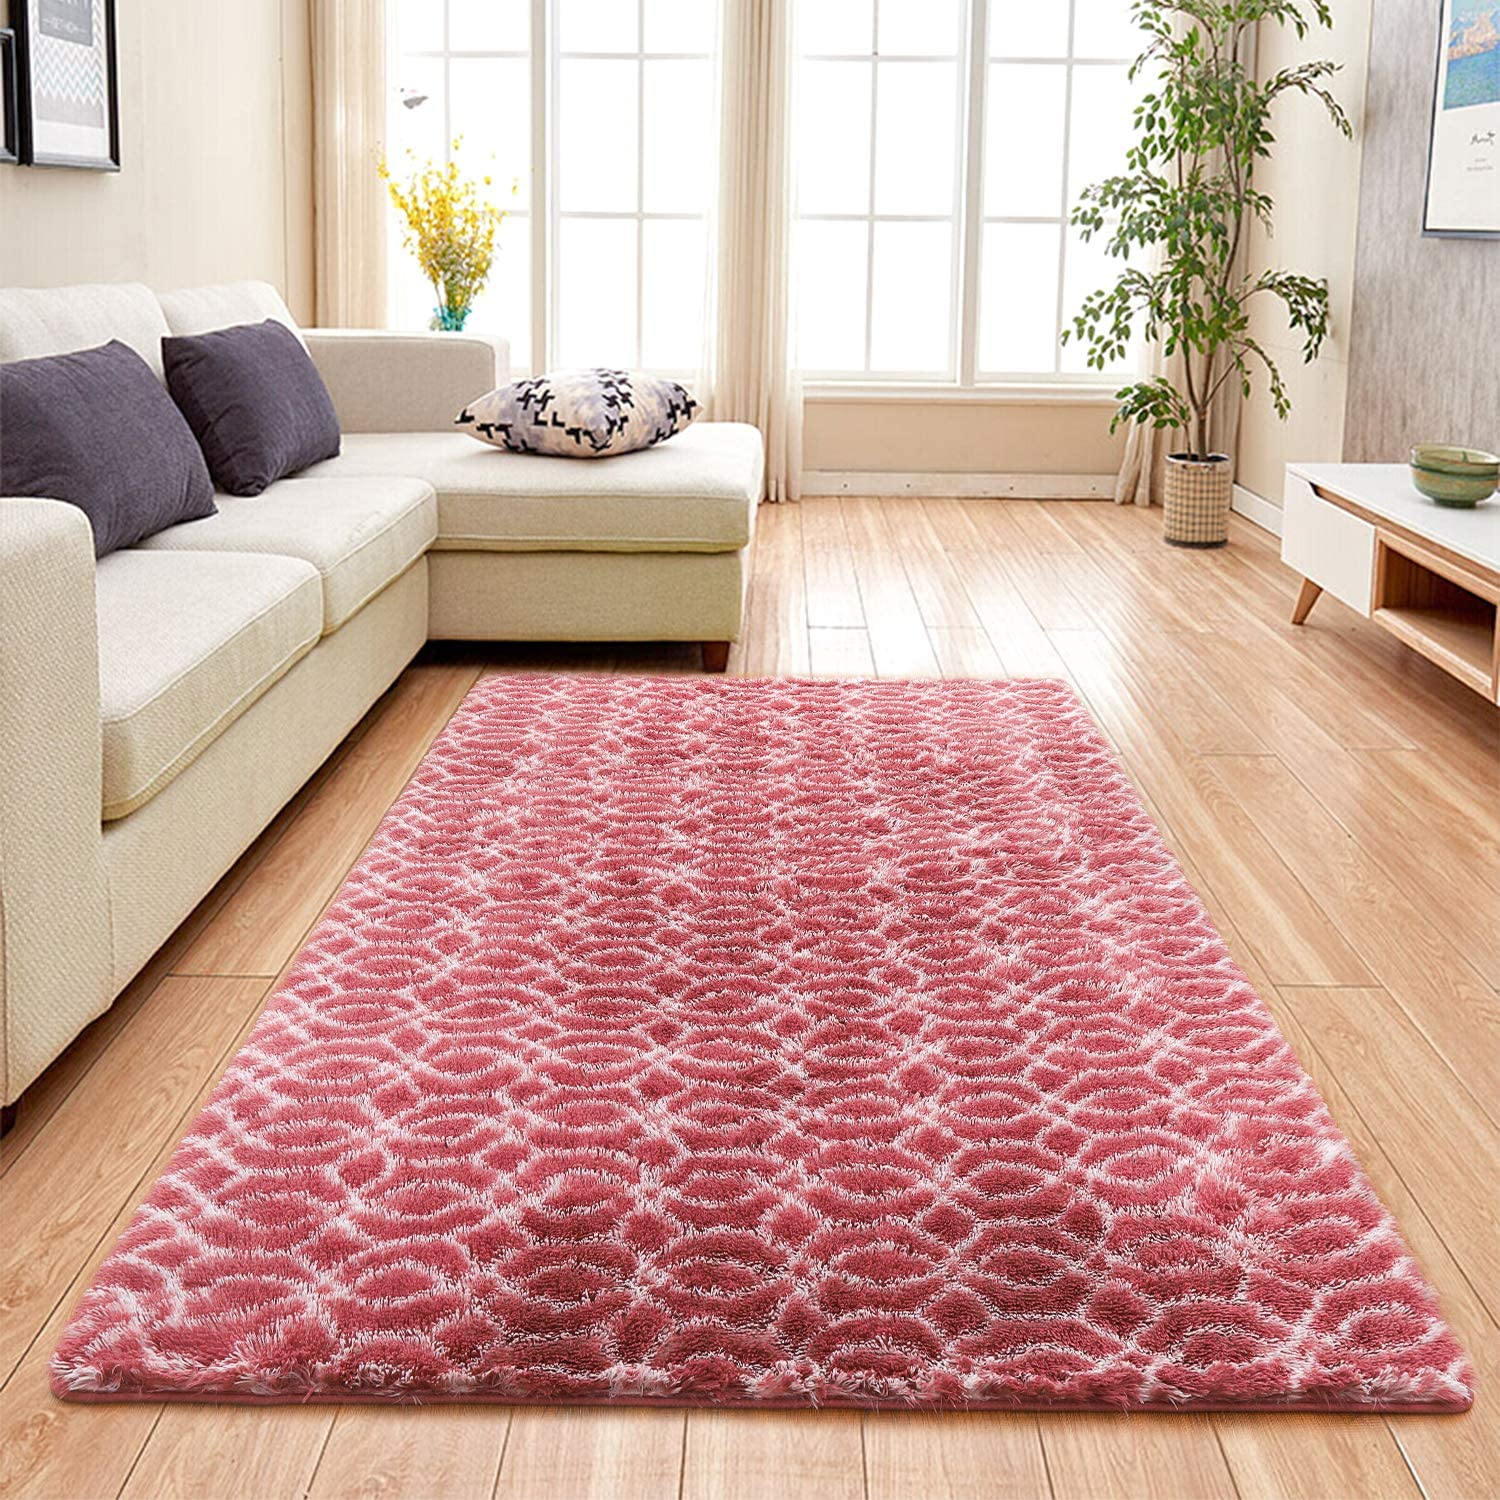 Flover Soft Indoor Large Modern Area Rugs Shaggy Patterned Fluffy Carpets Suitable for Living Room and Bedroom Nursery Rugs Home Decor Rugs Dark Pink & White (4x6 ft)